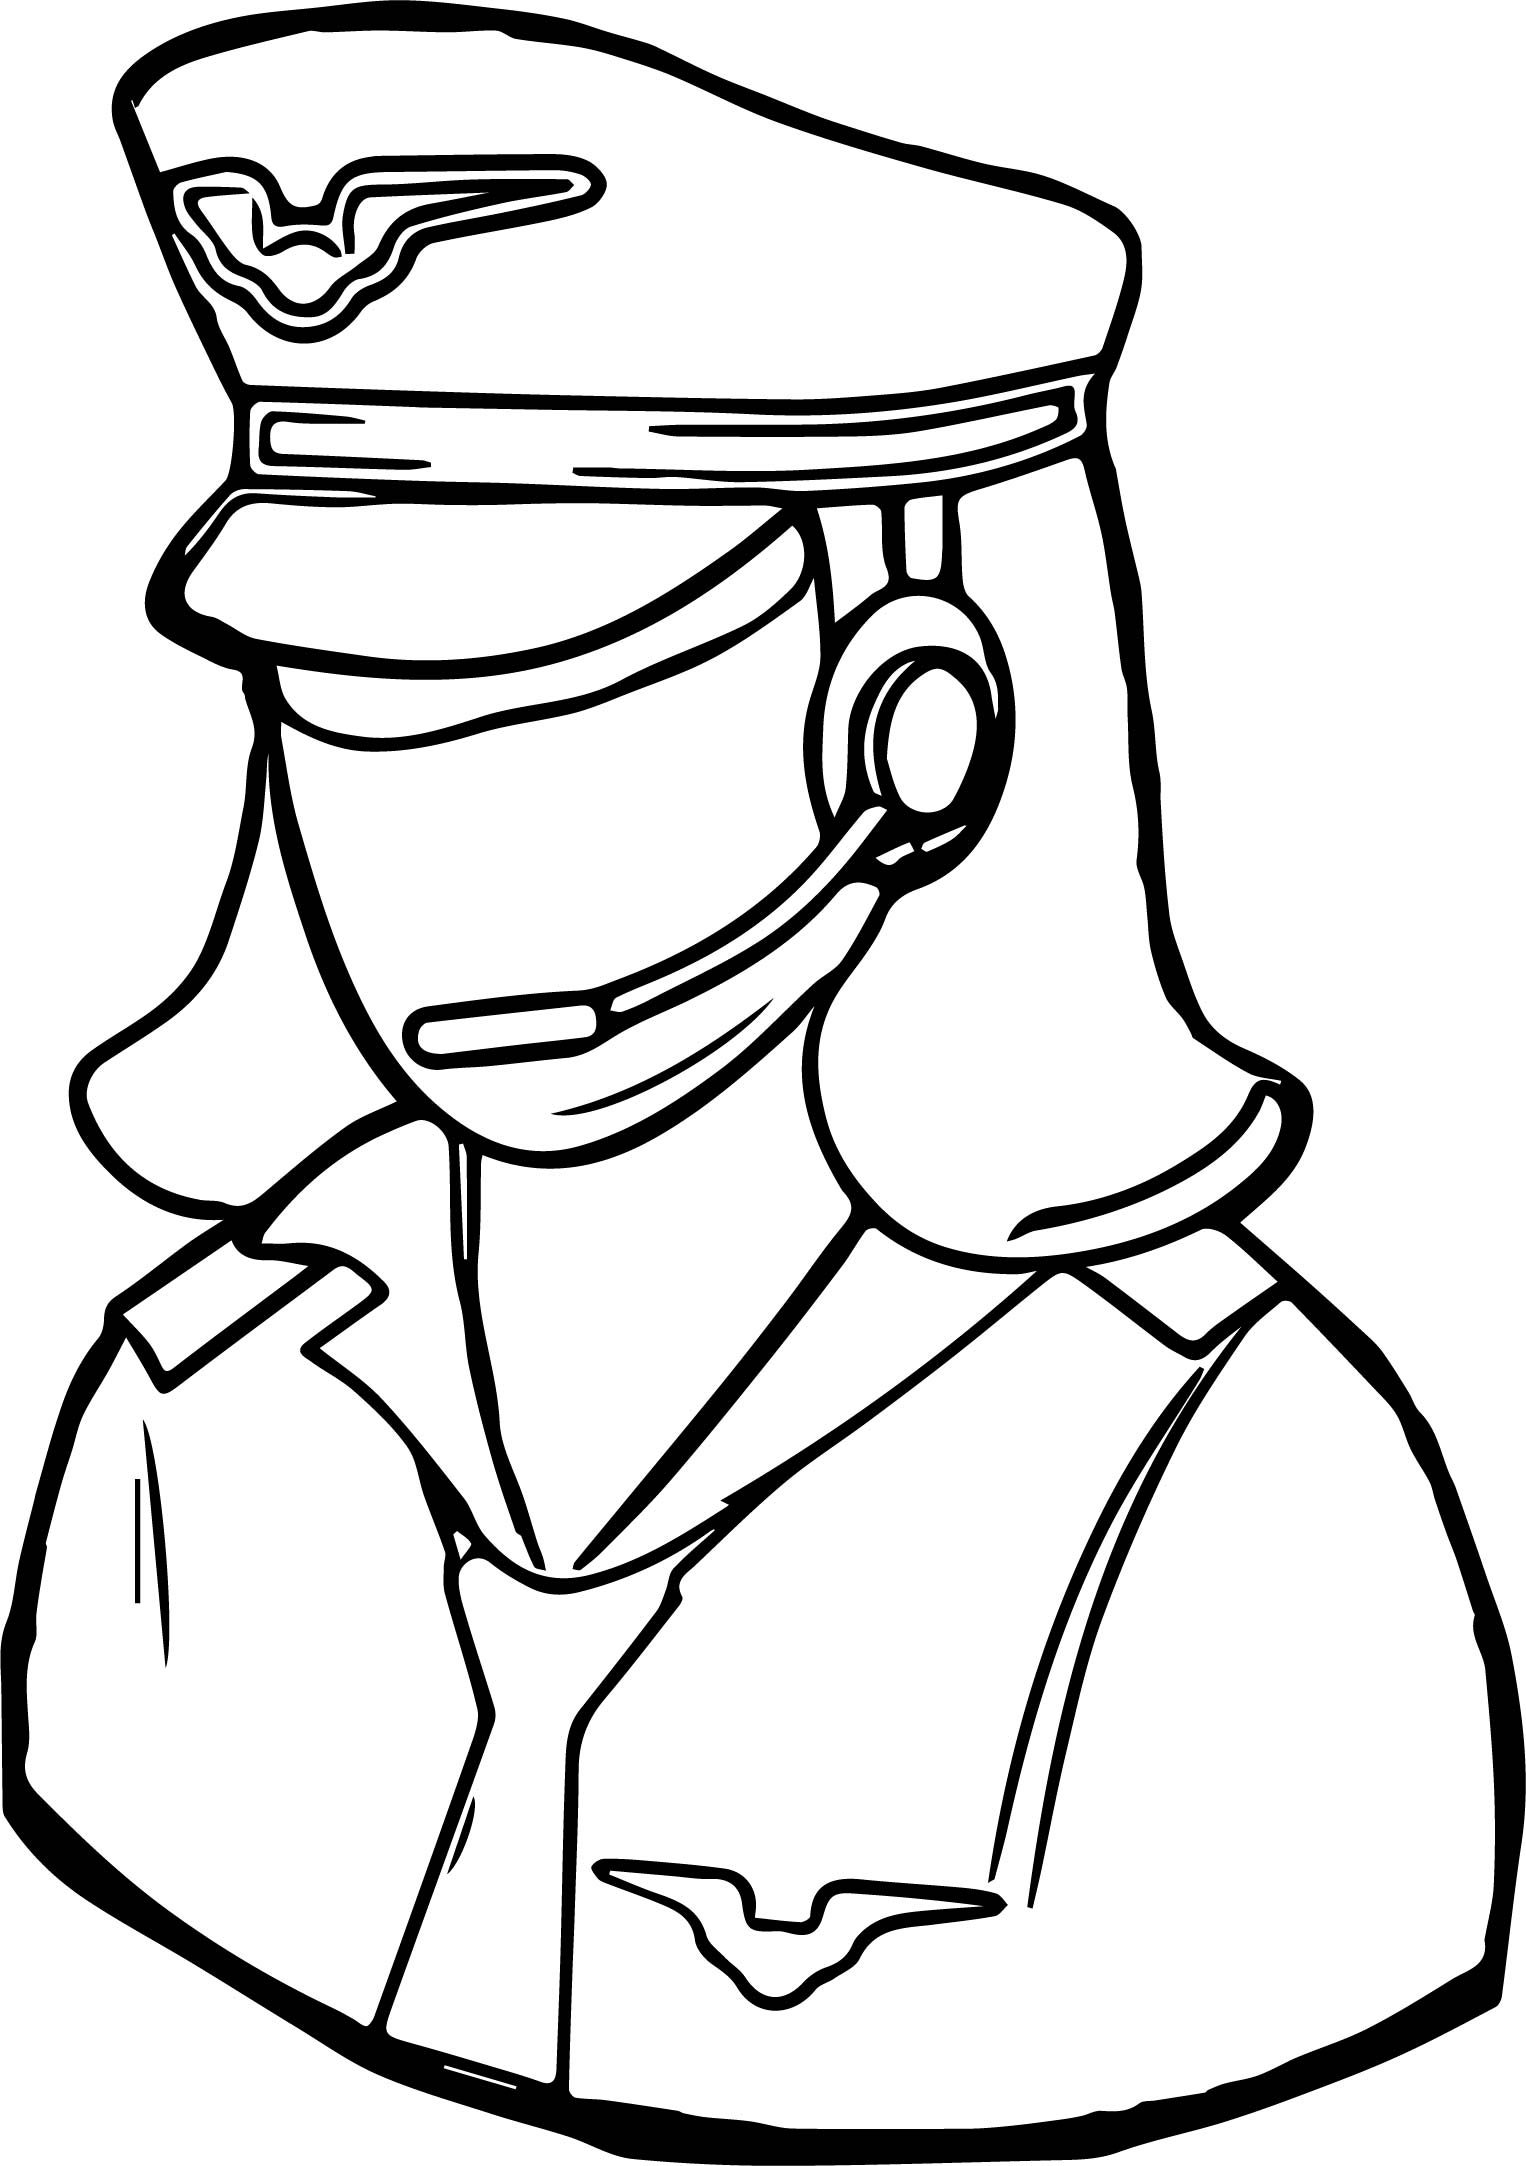 coloring pages of women pilots - photo#1